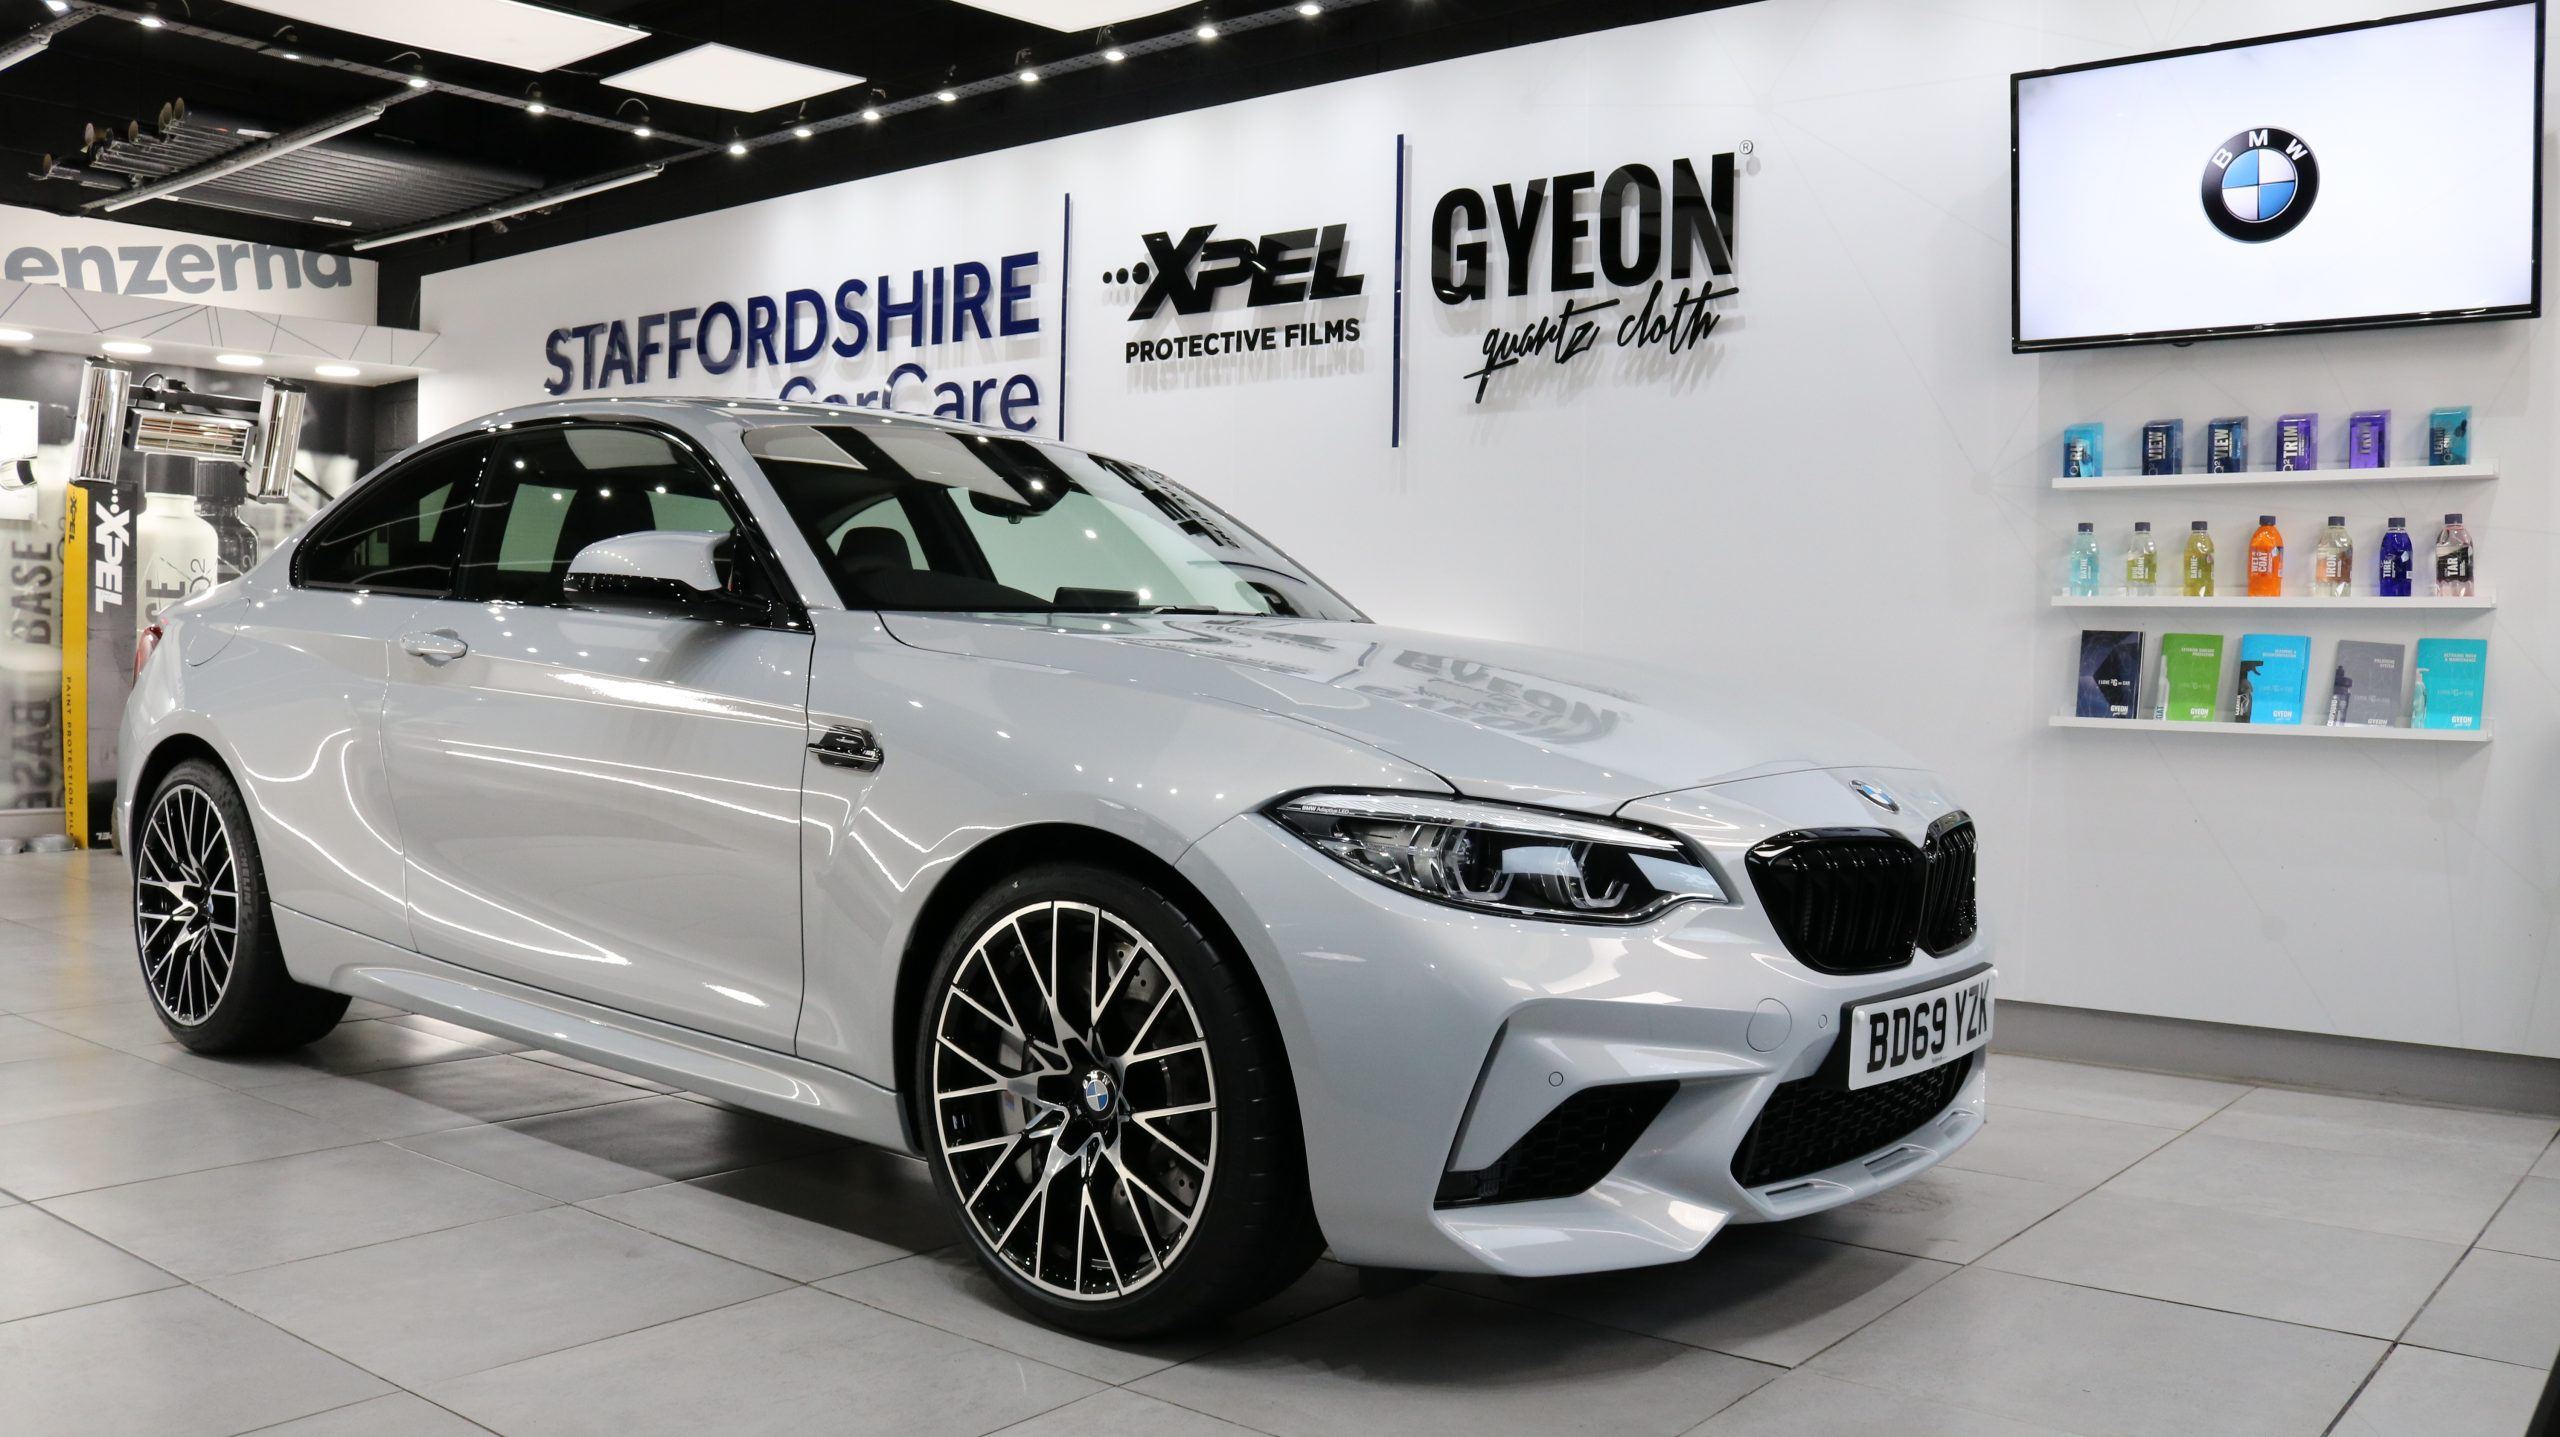 BMW - GYEON - XPEL